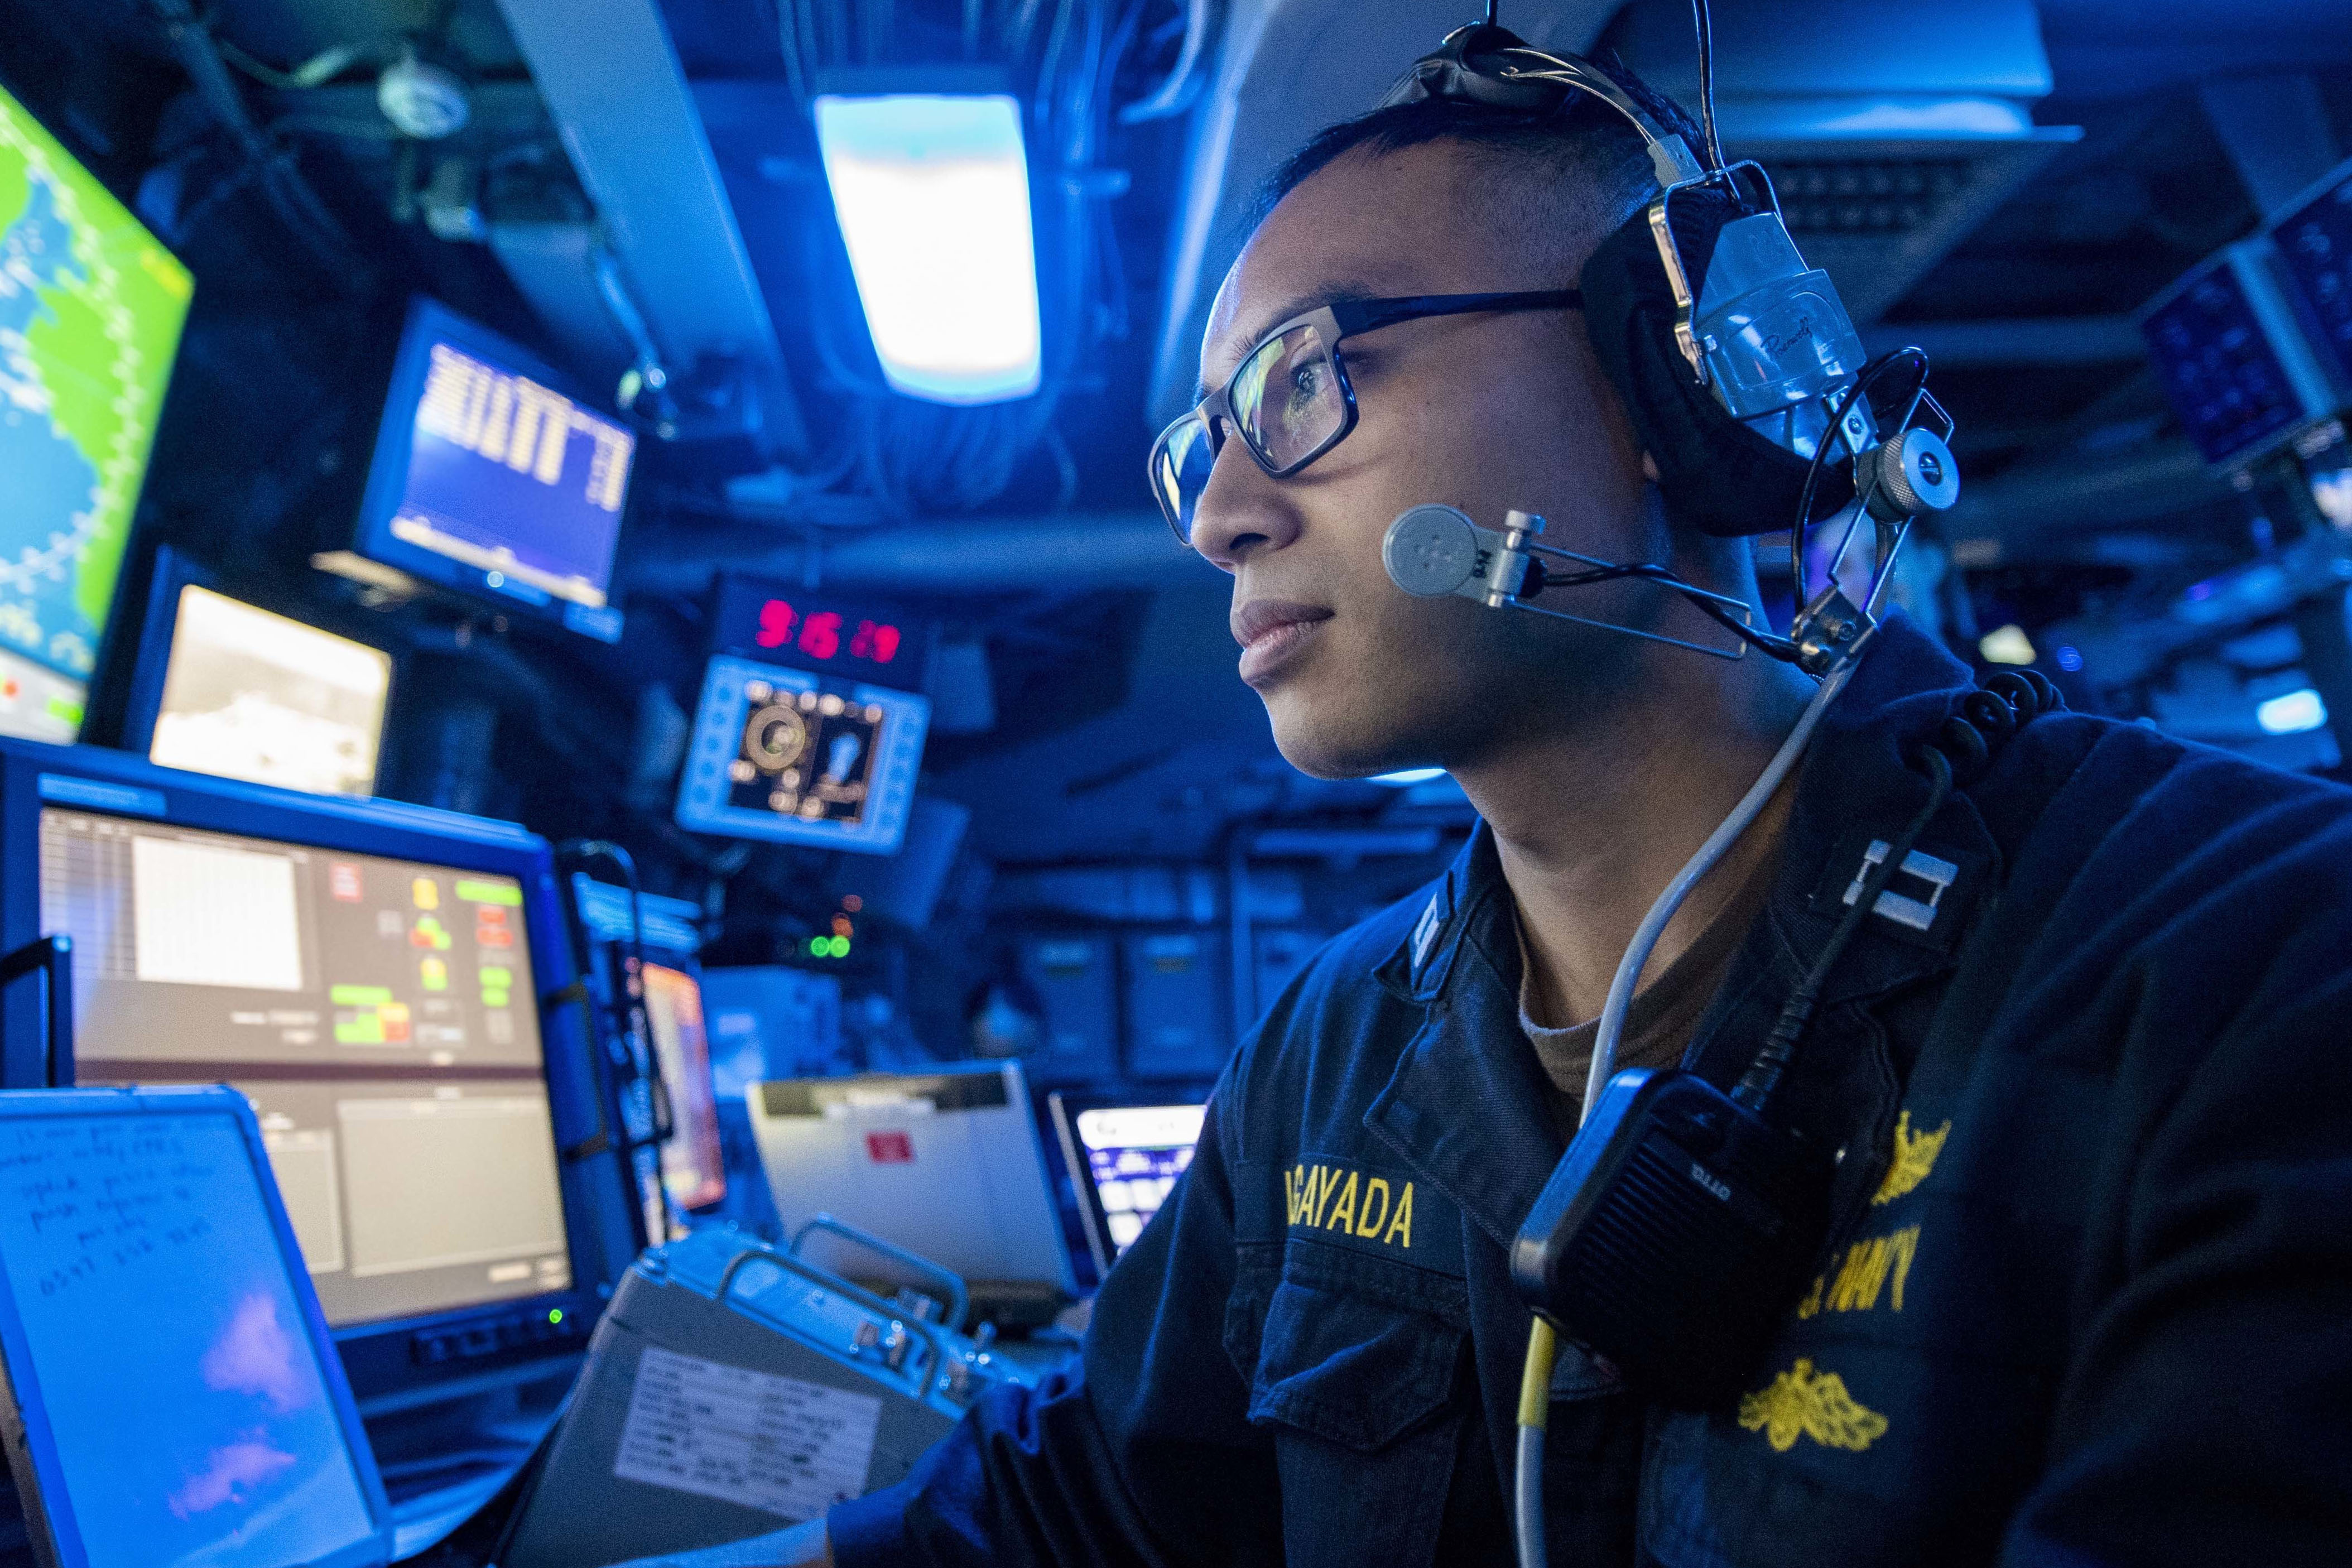 Navy Lt. Andrew Lagayada works in the command center aboard the USS John P. Murtha. (Navy Petty Officer 2nd Class Kyle Carlstrom/DoD)